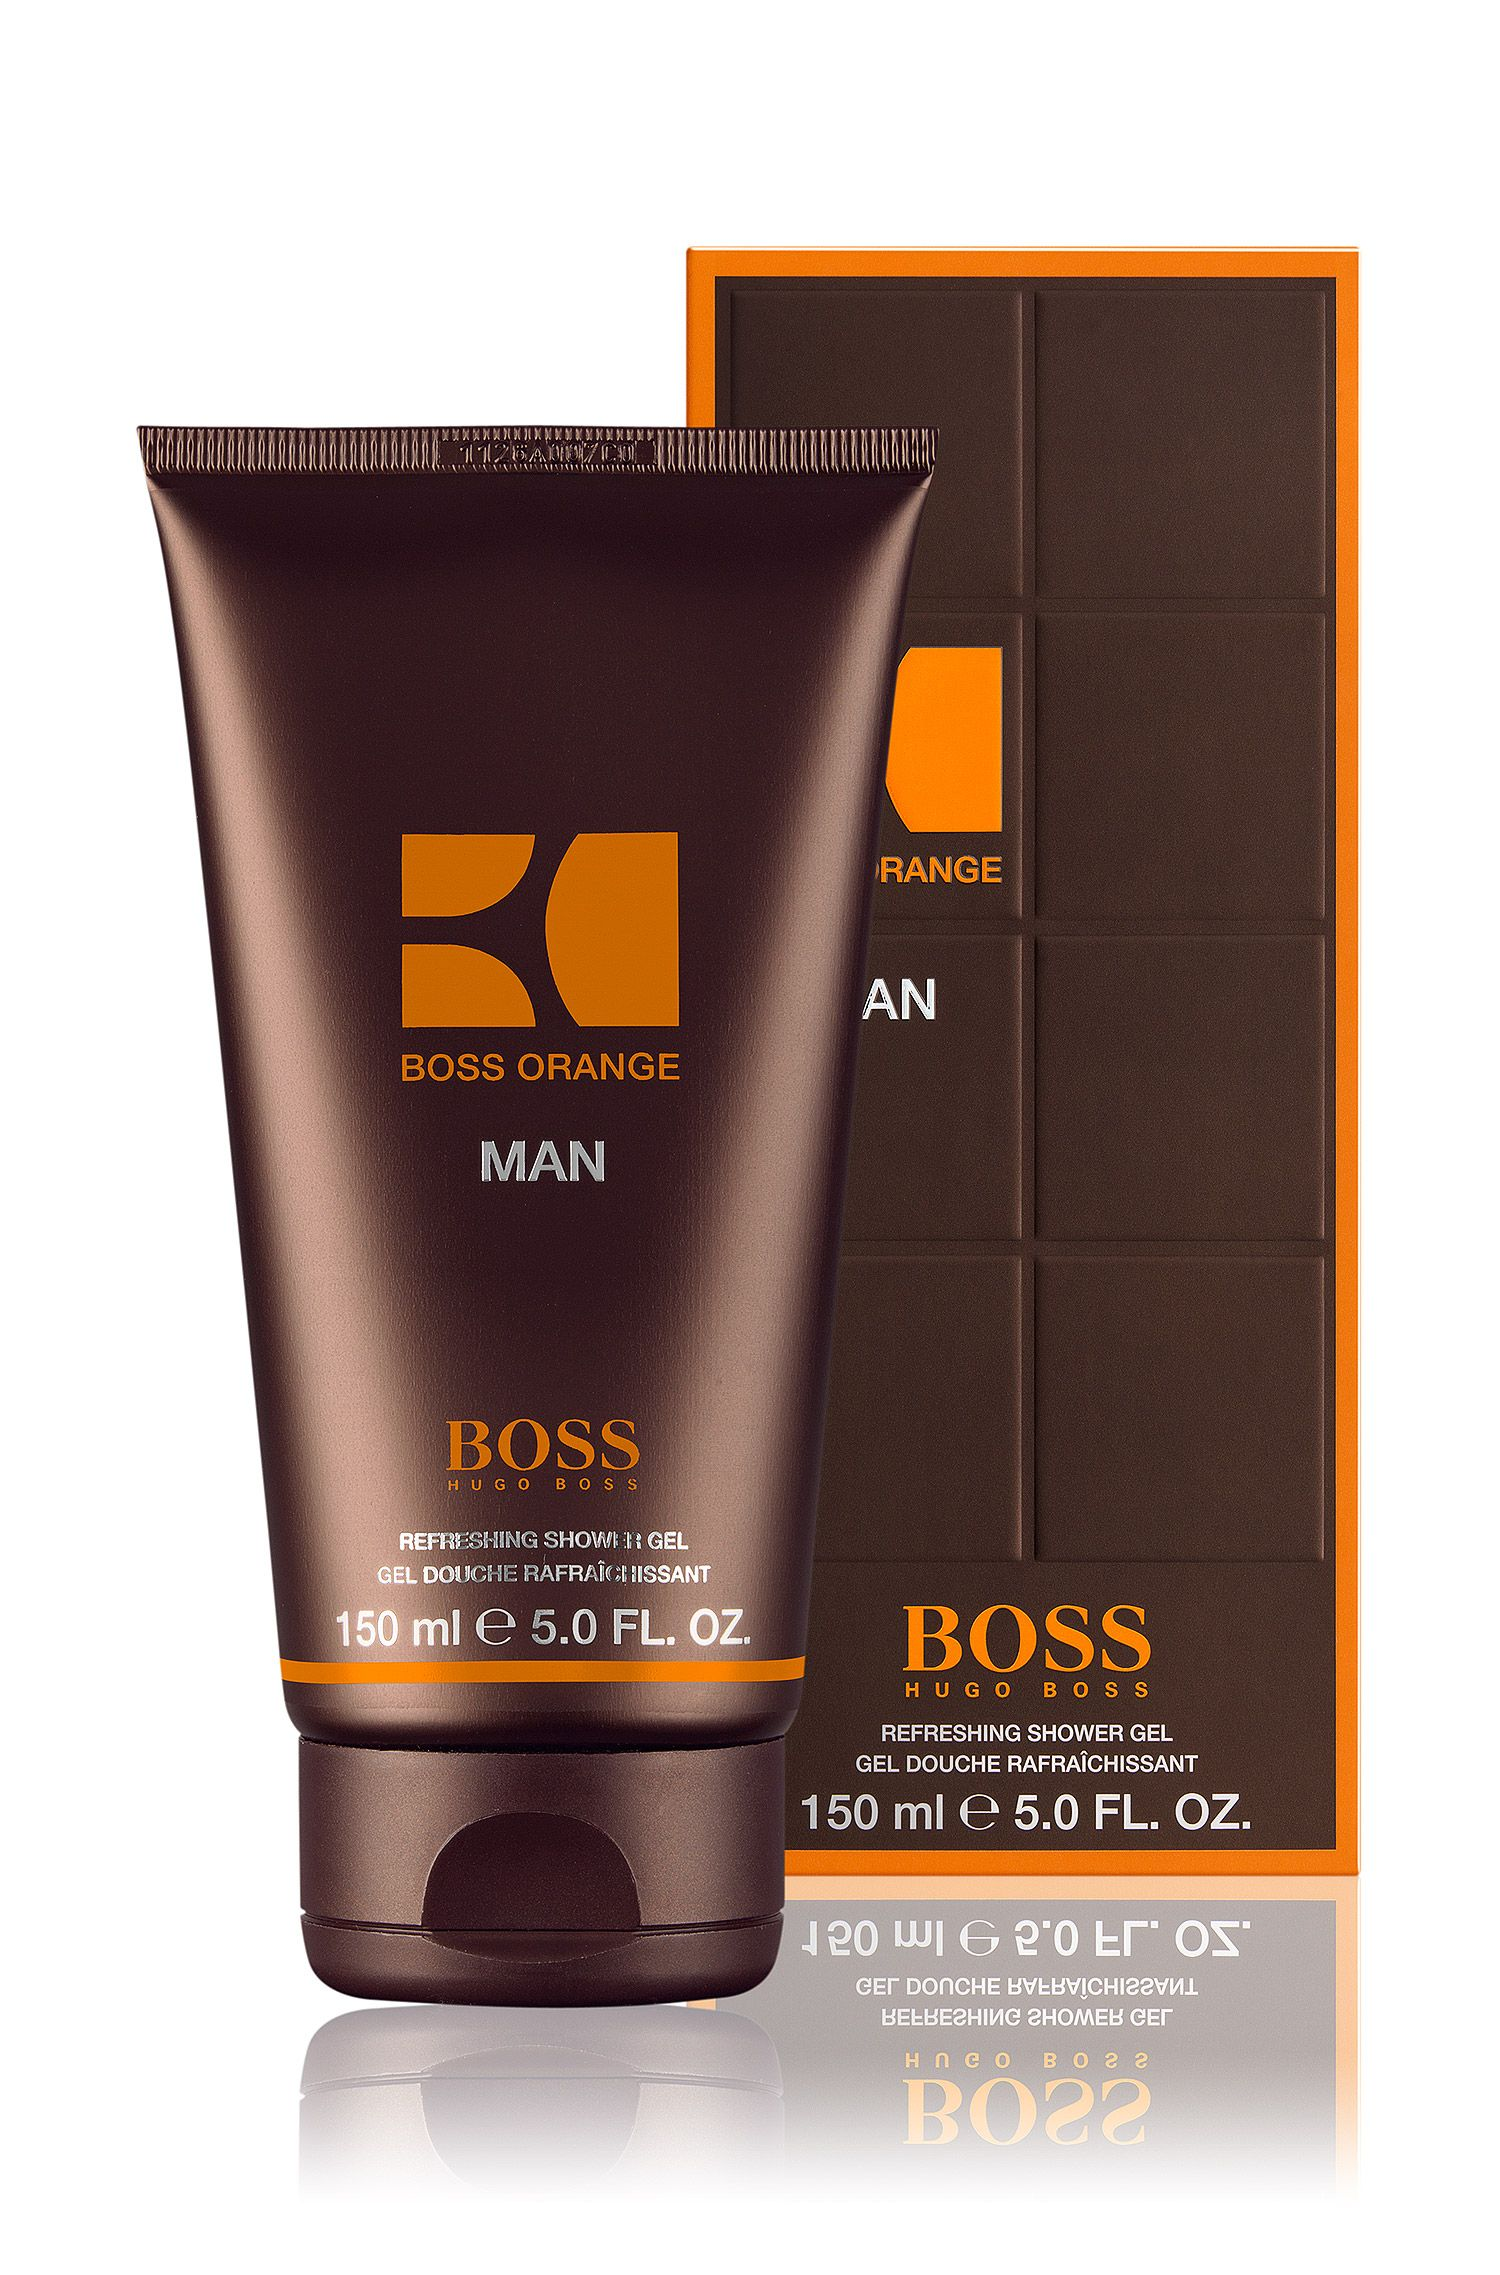 BOSS Orange Man, gel douche 150 ml U/C